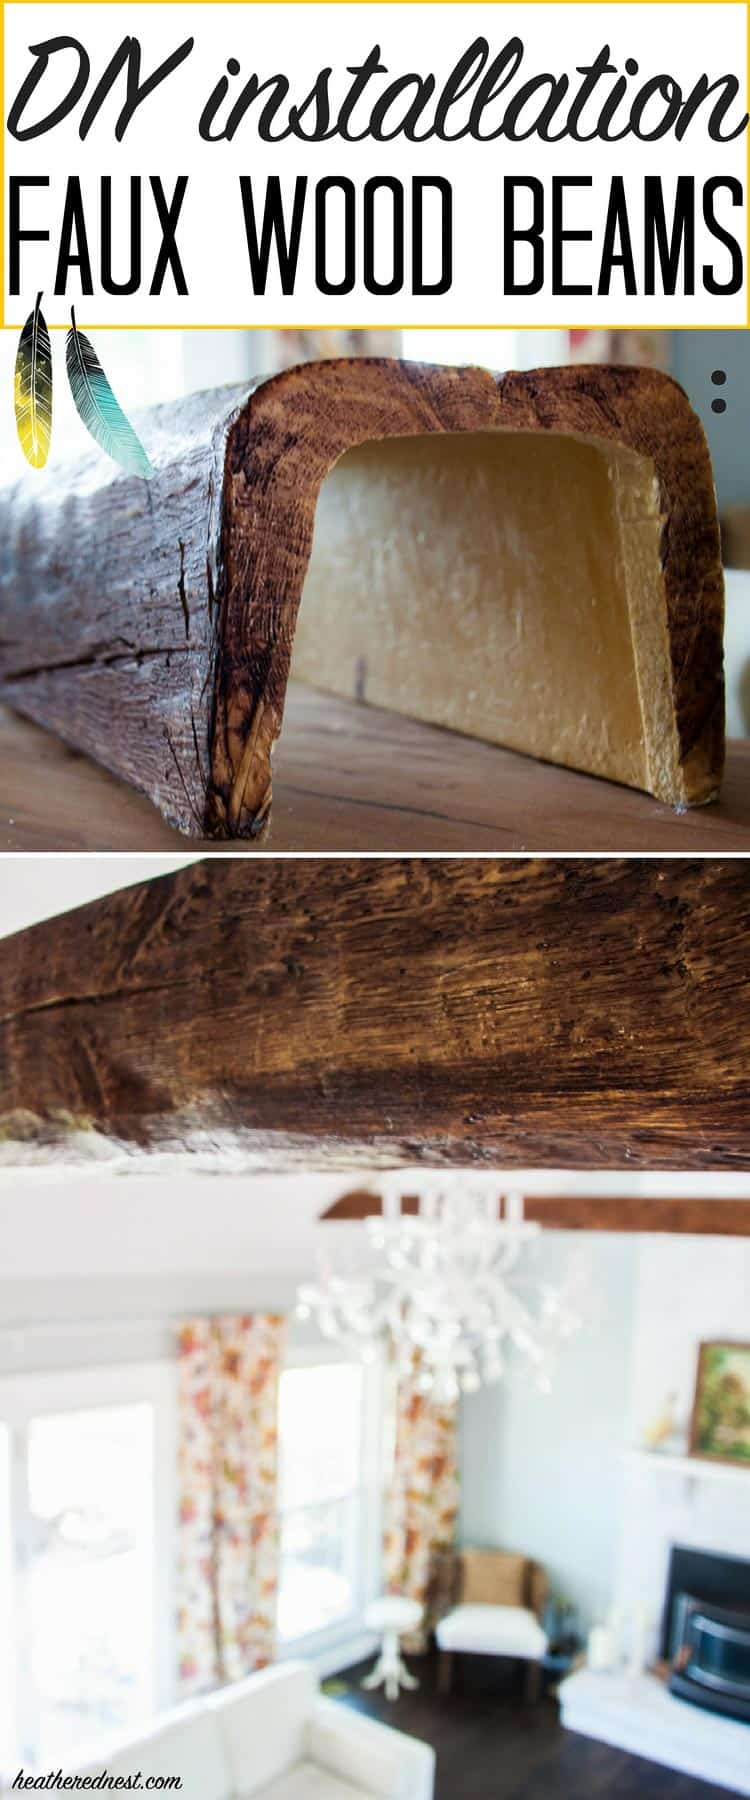 2 close-up images of faux wood beams